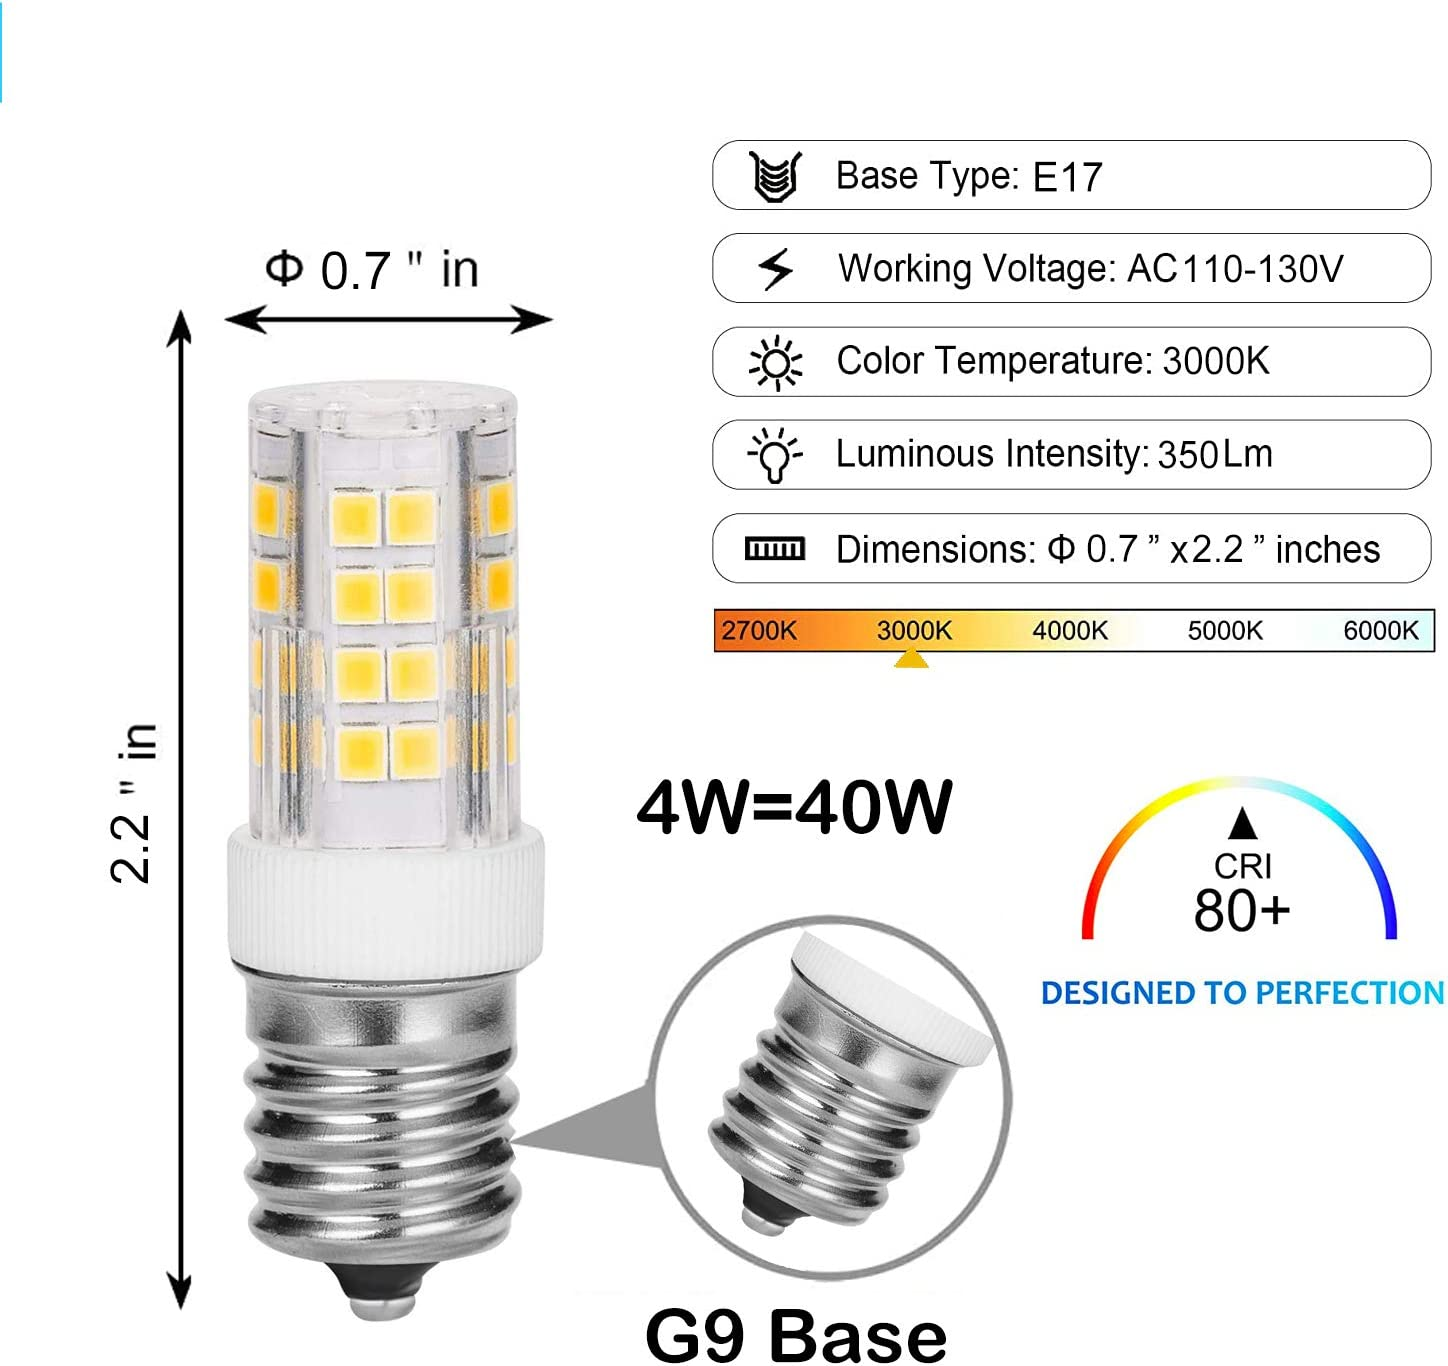 Not Dimmable Daylight White 6000K E17 Daylight White Bulbs for Home Lighting G9 Base 400LM NLEHB E17 LED Bulb 4W Pack of 2 40W Halogen Equivalent